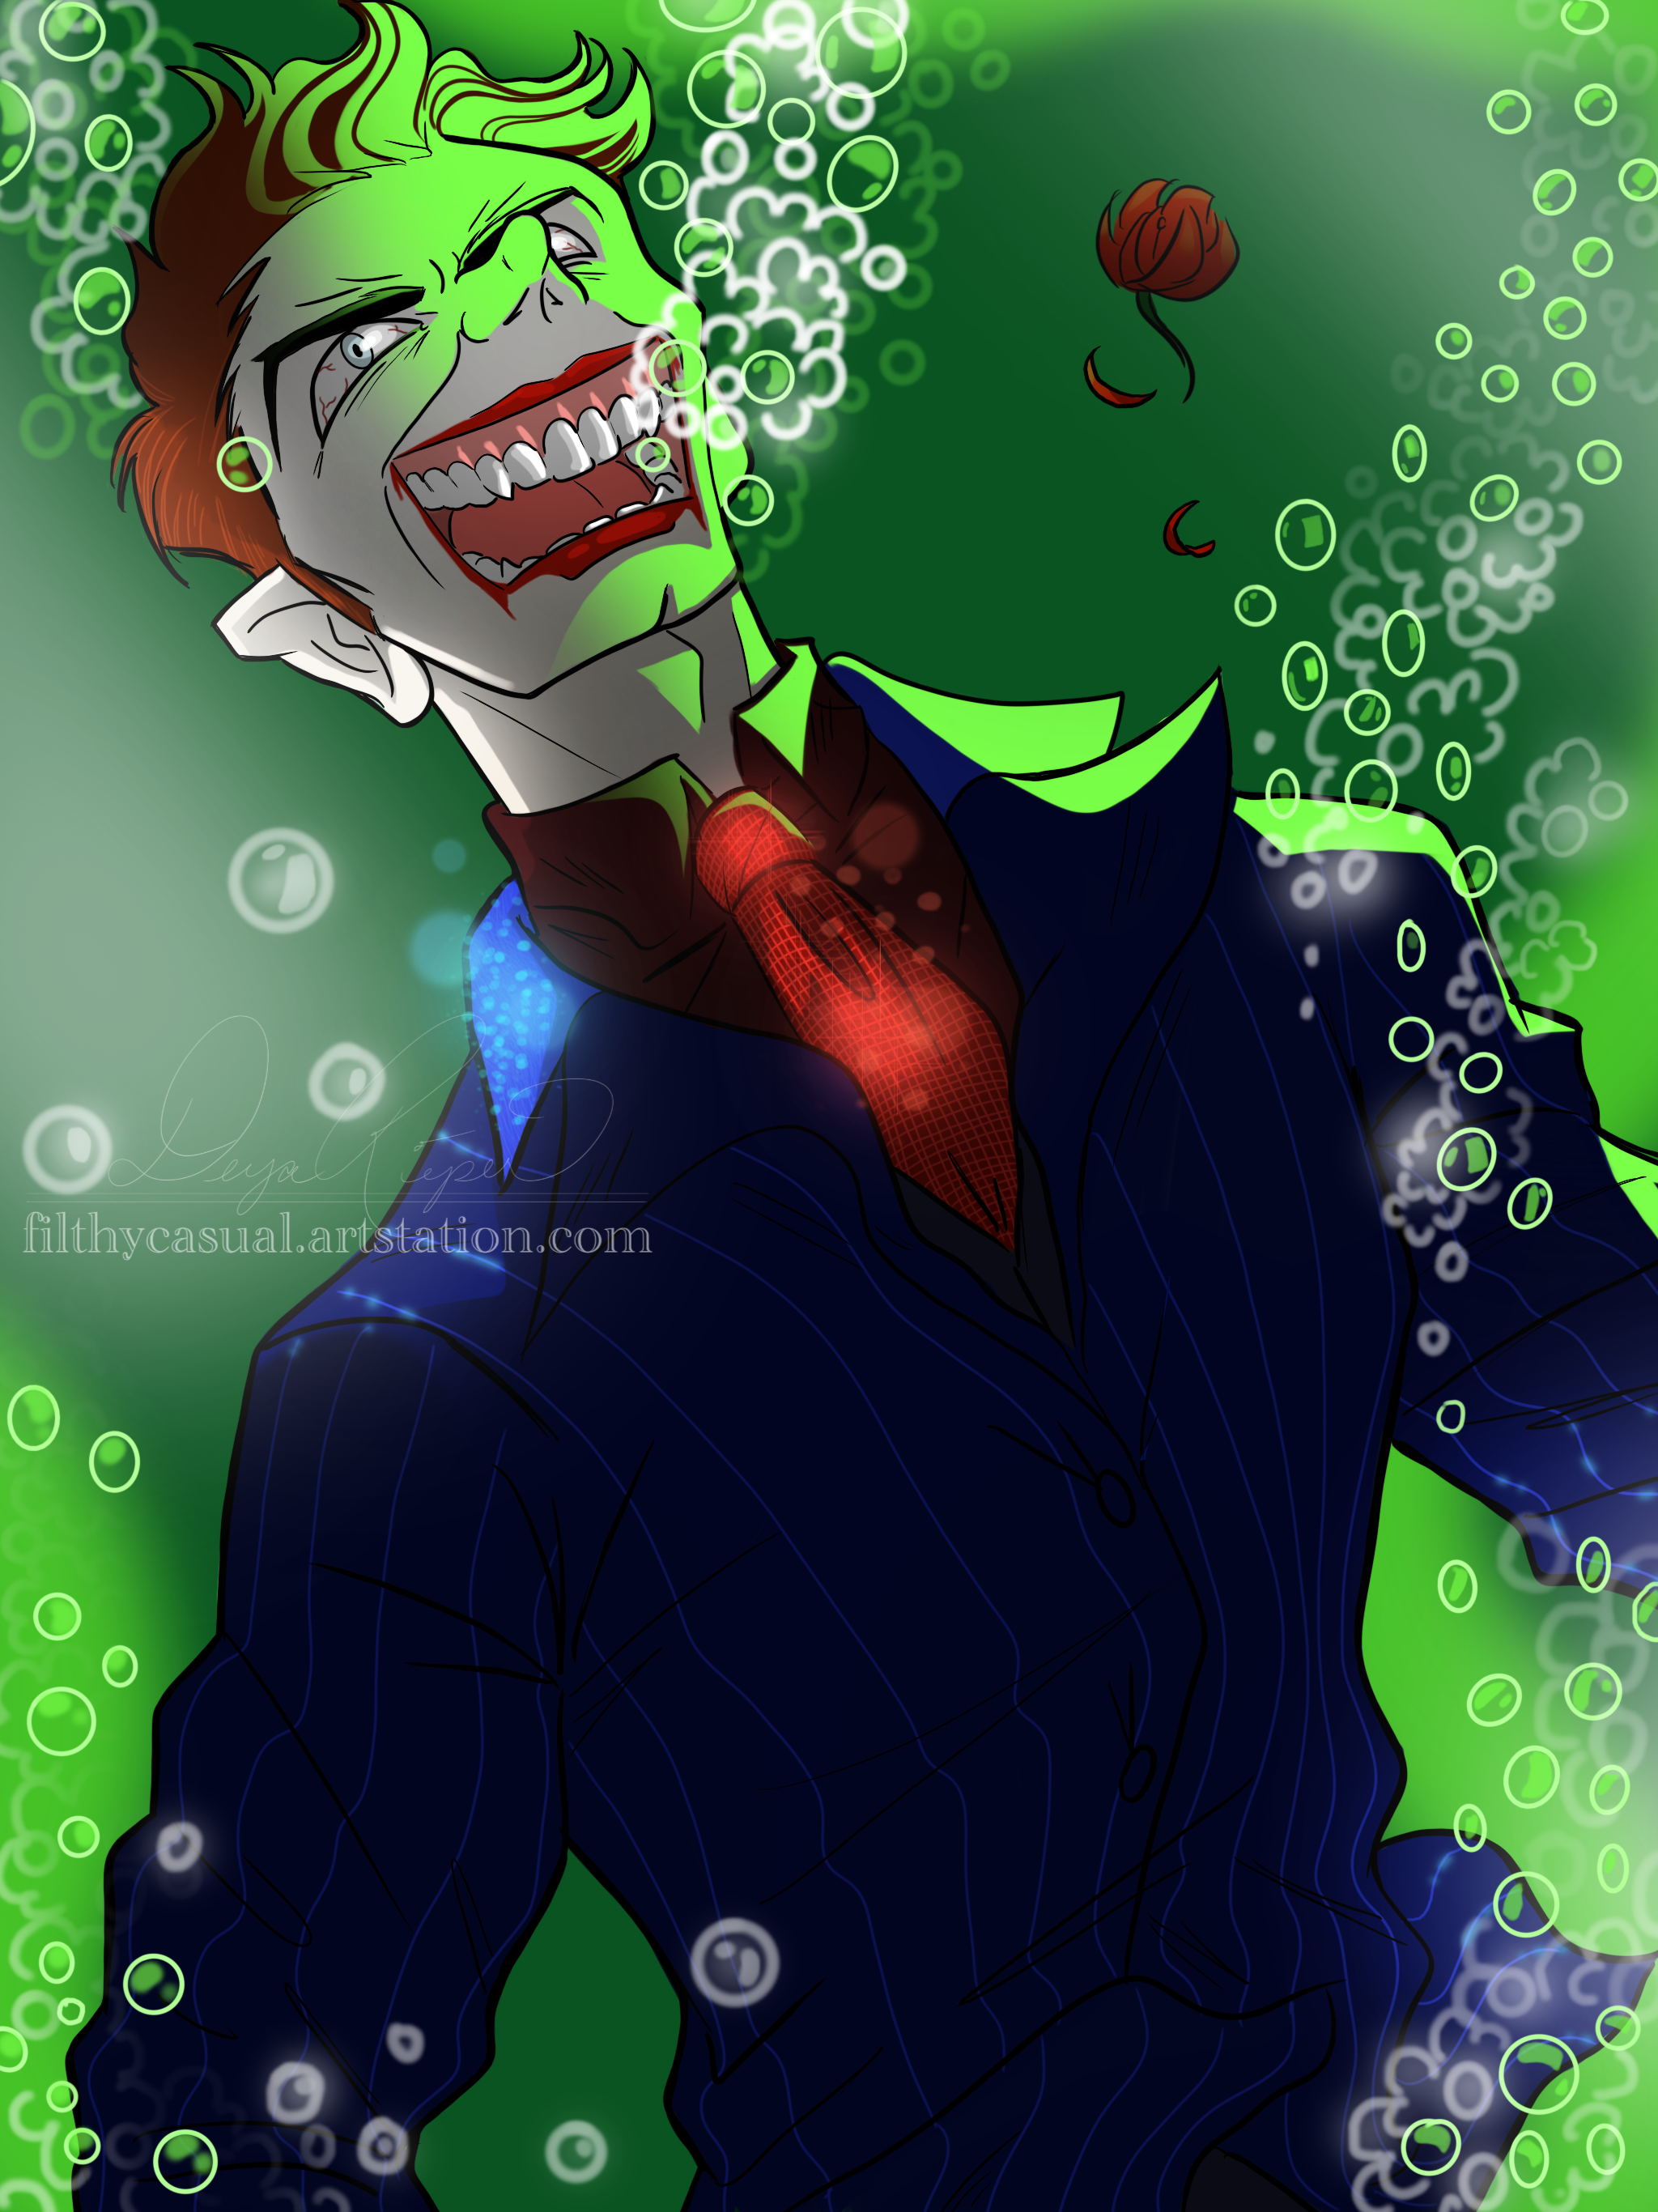 Jeremiah Valeska by Filthycasualfanfic on Newgrounds